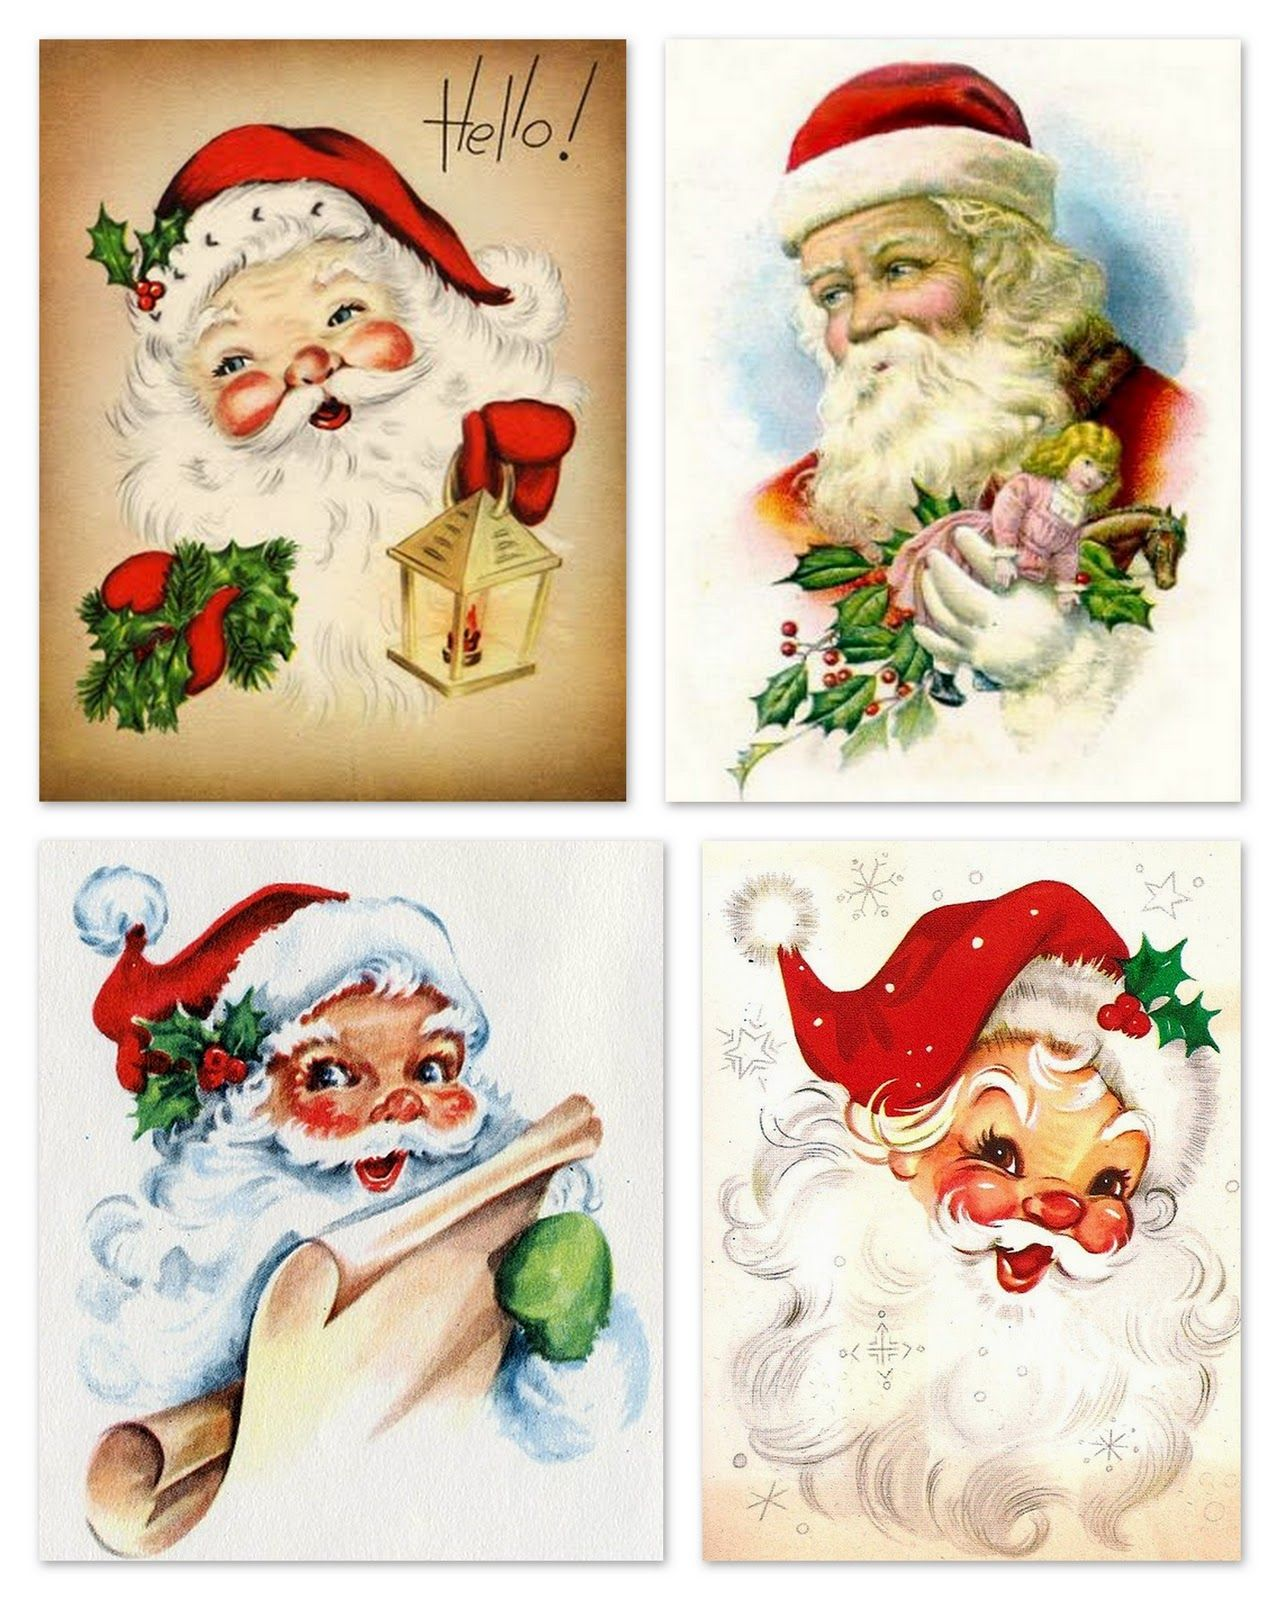 Magic moonlight free images a christmas gift vintage santa i magic moonlight free images a christmas gift vintage santa i made this collage m4hsunfo